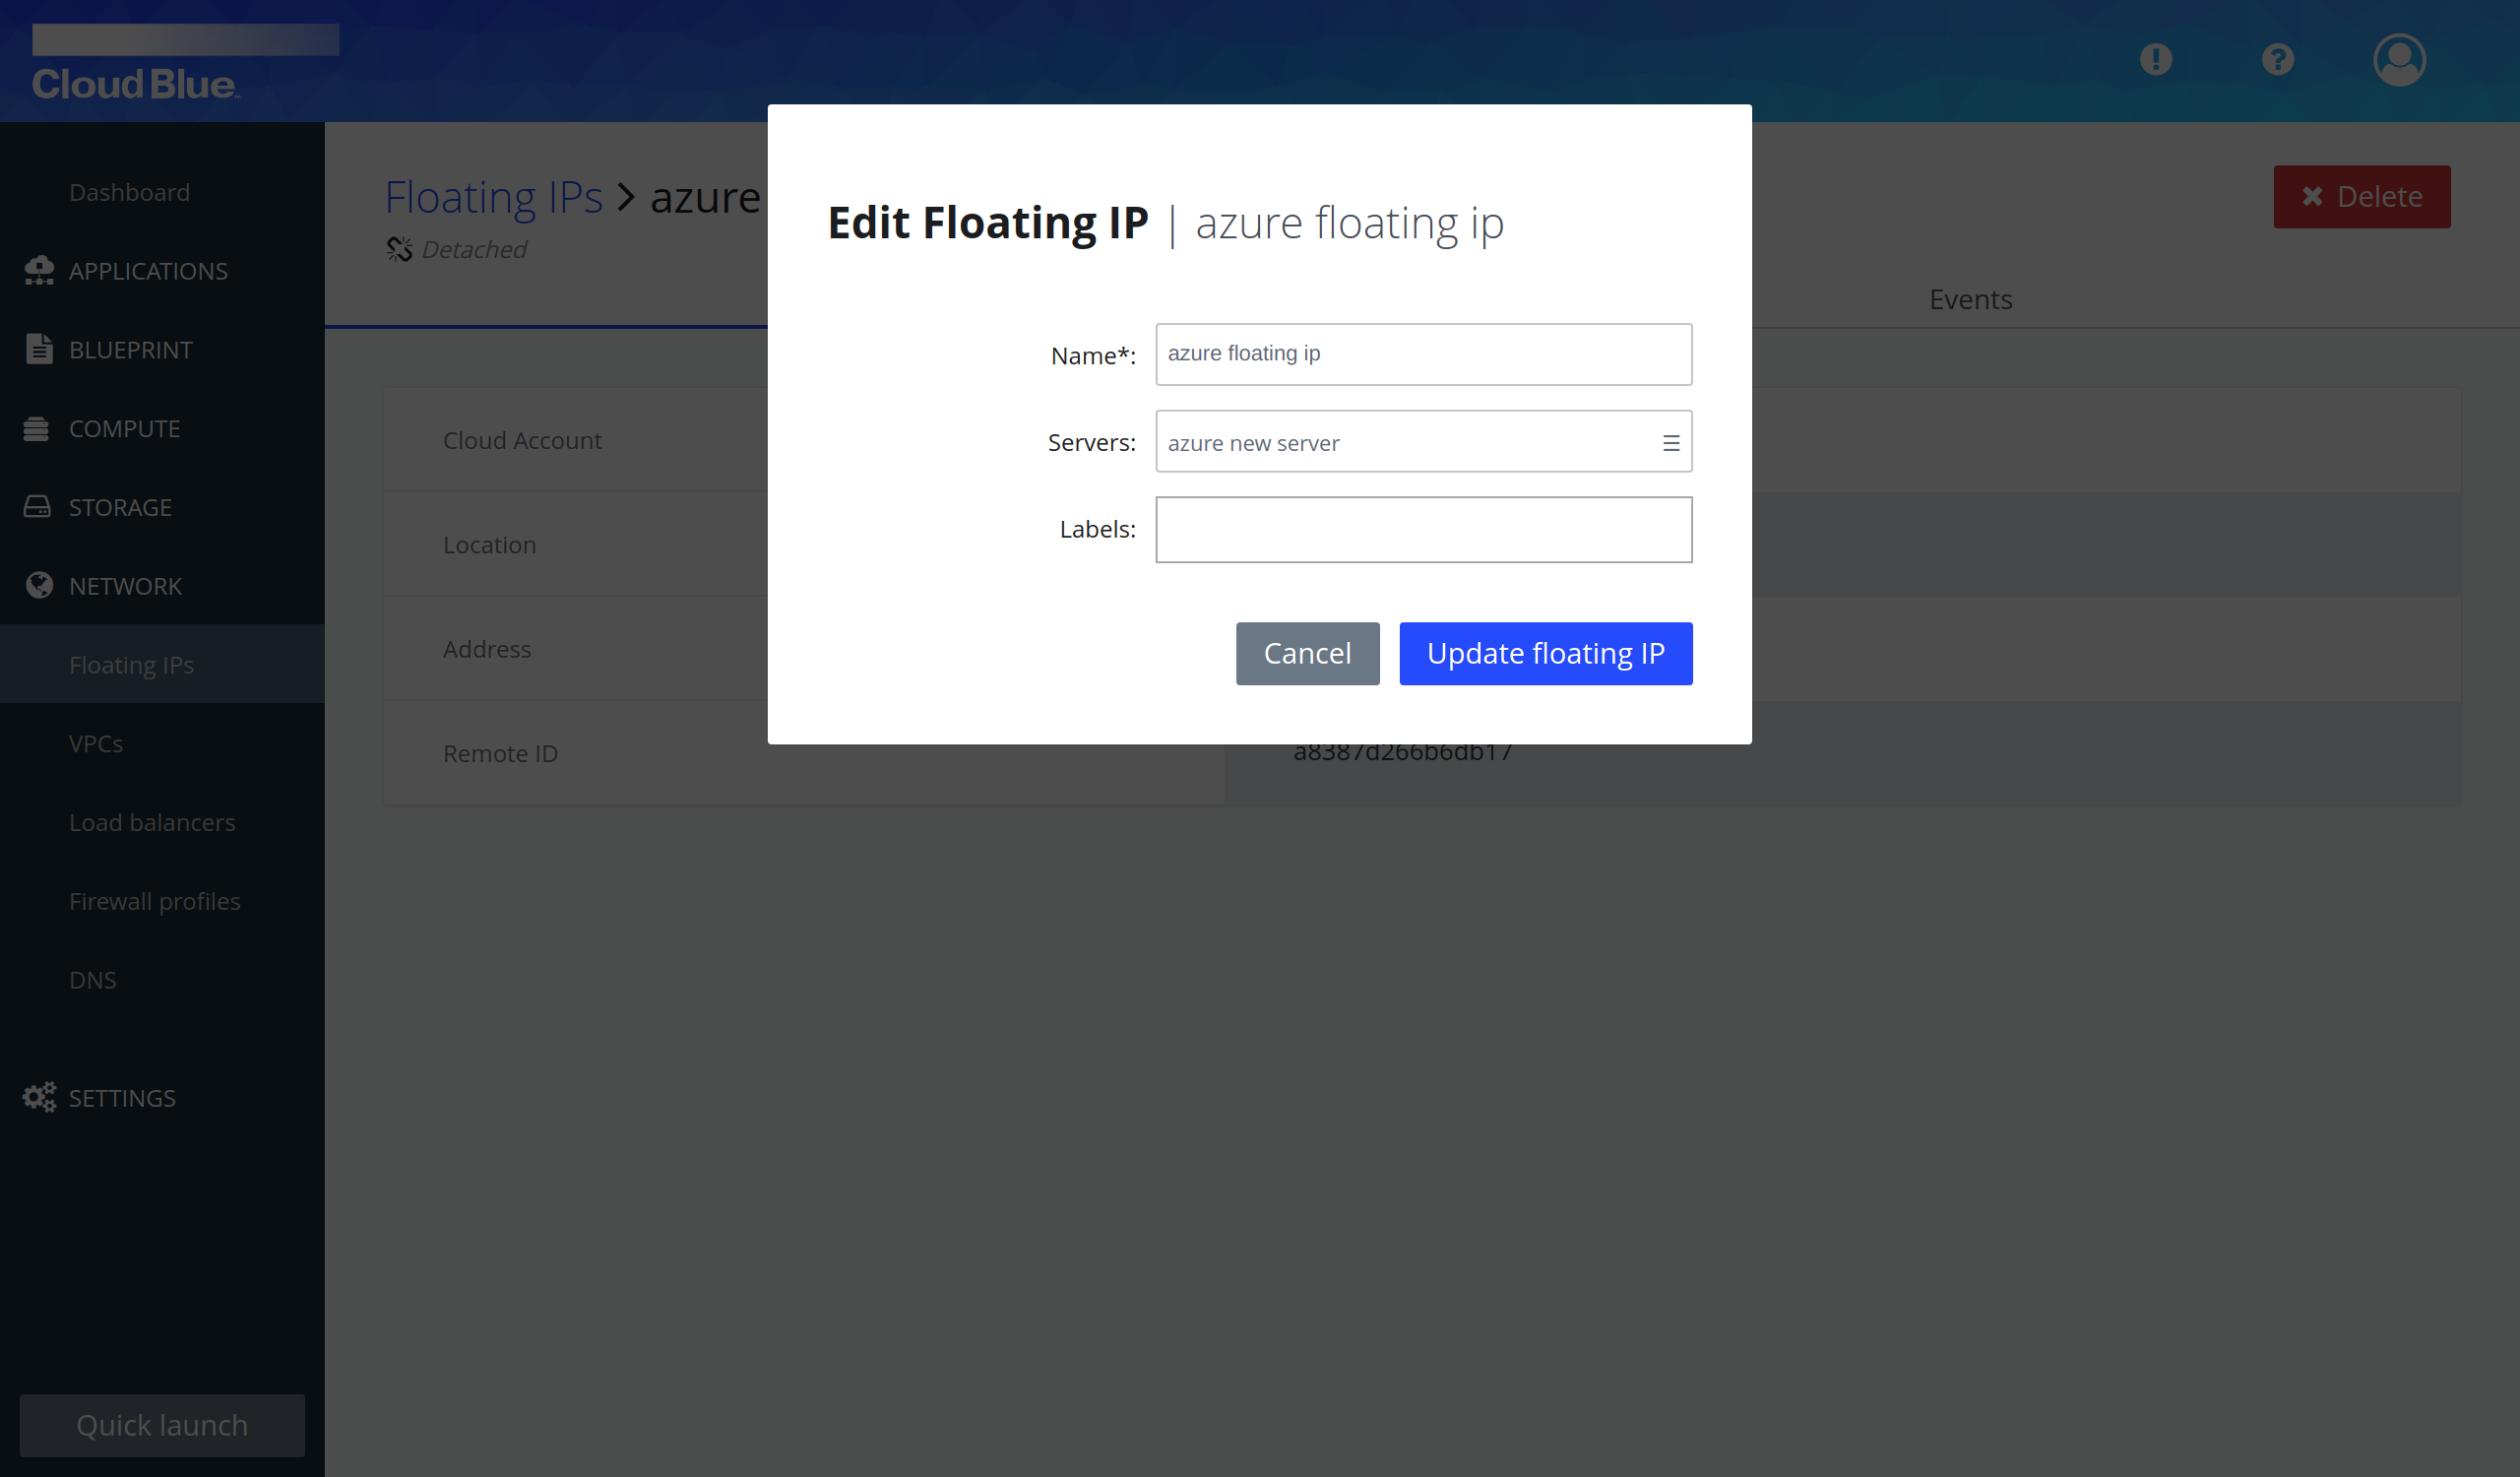 Floating IP edition pop-up